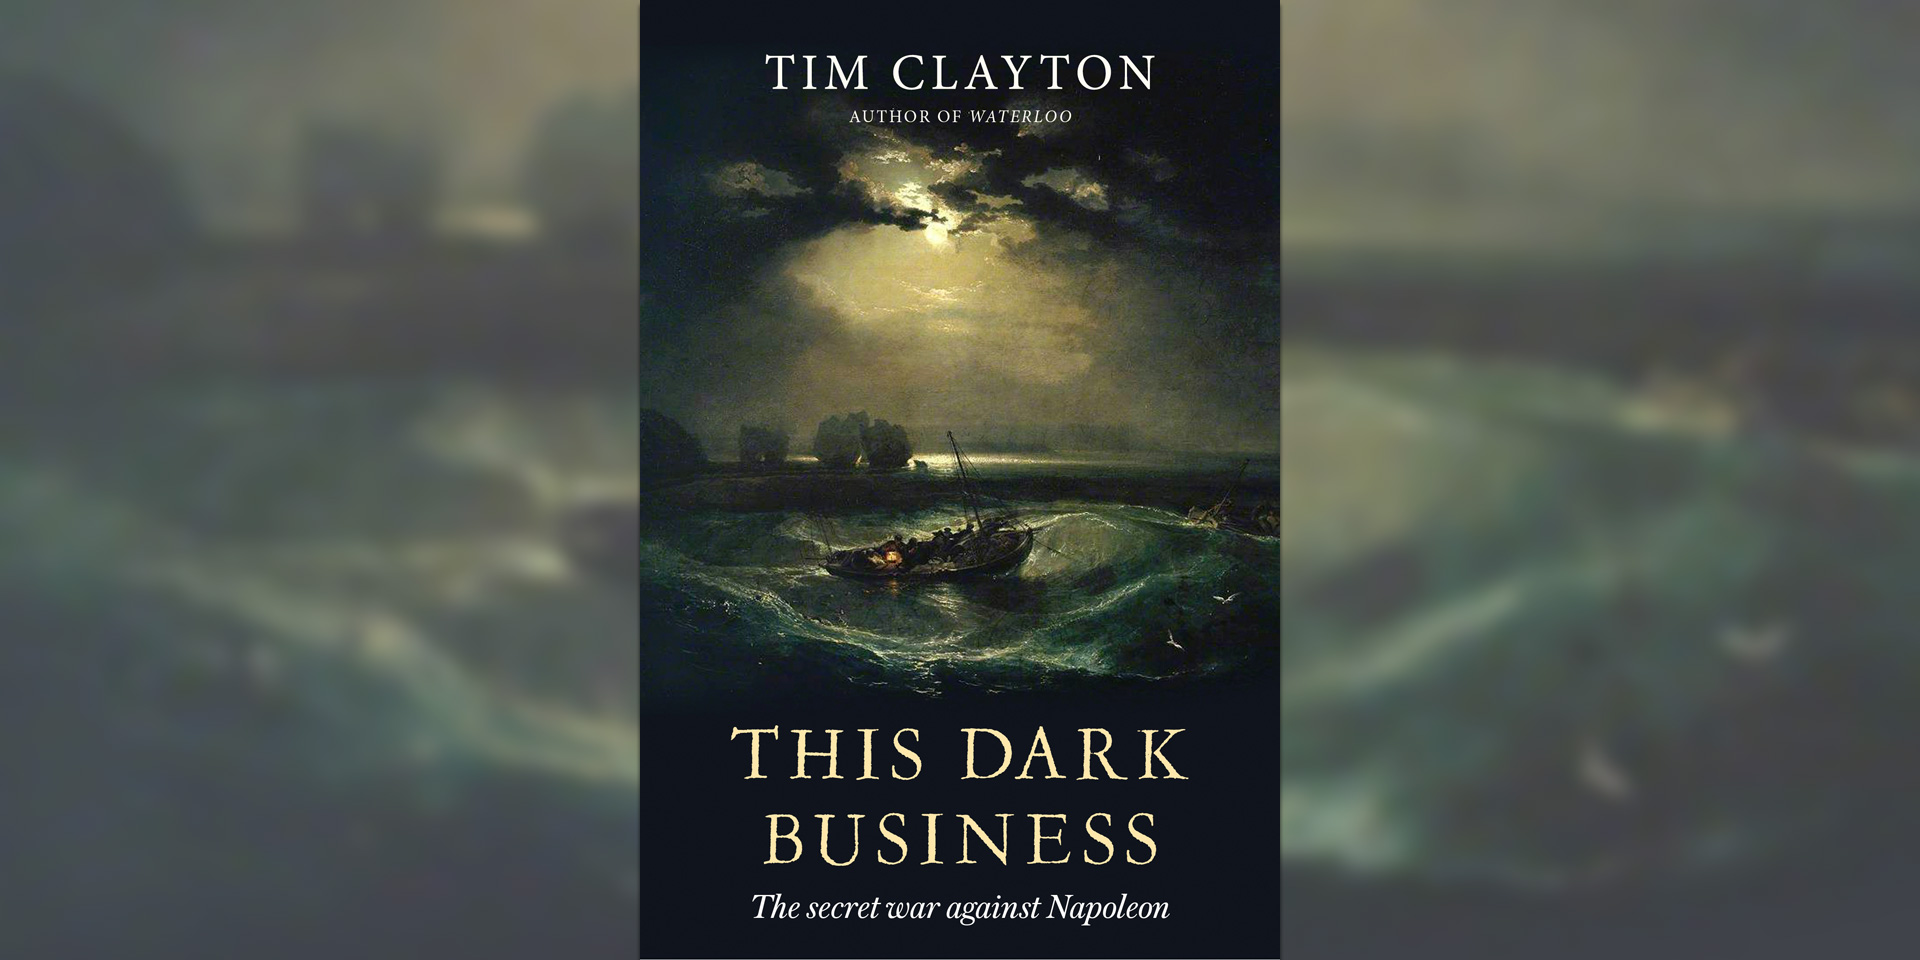 'This Dark Business' book cover